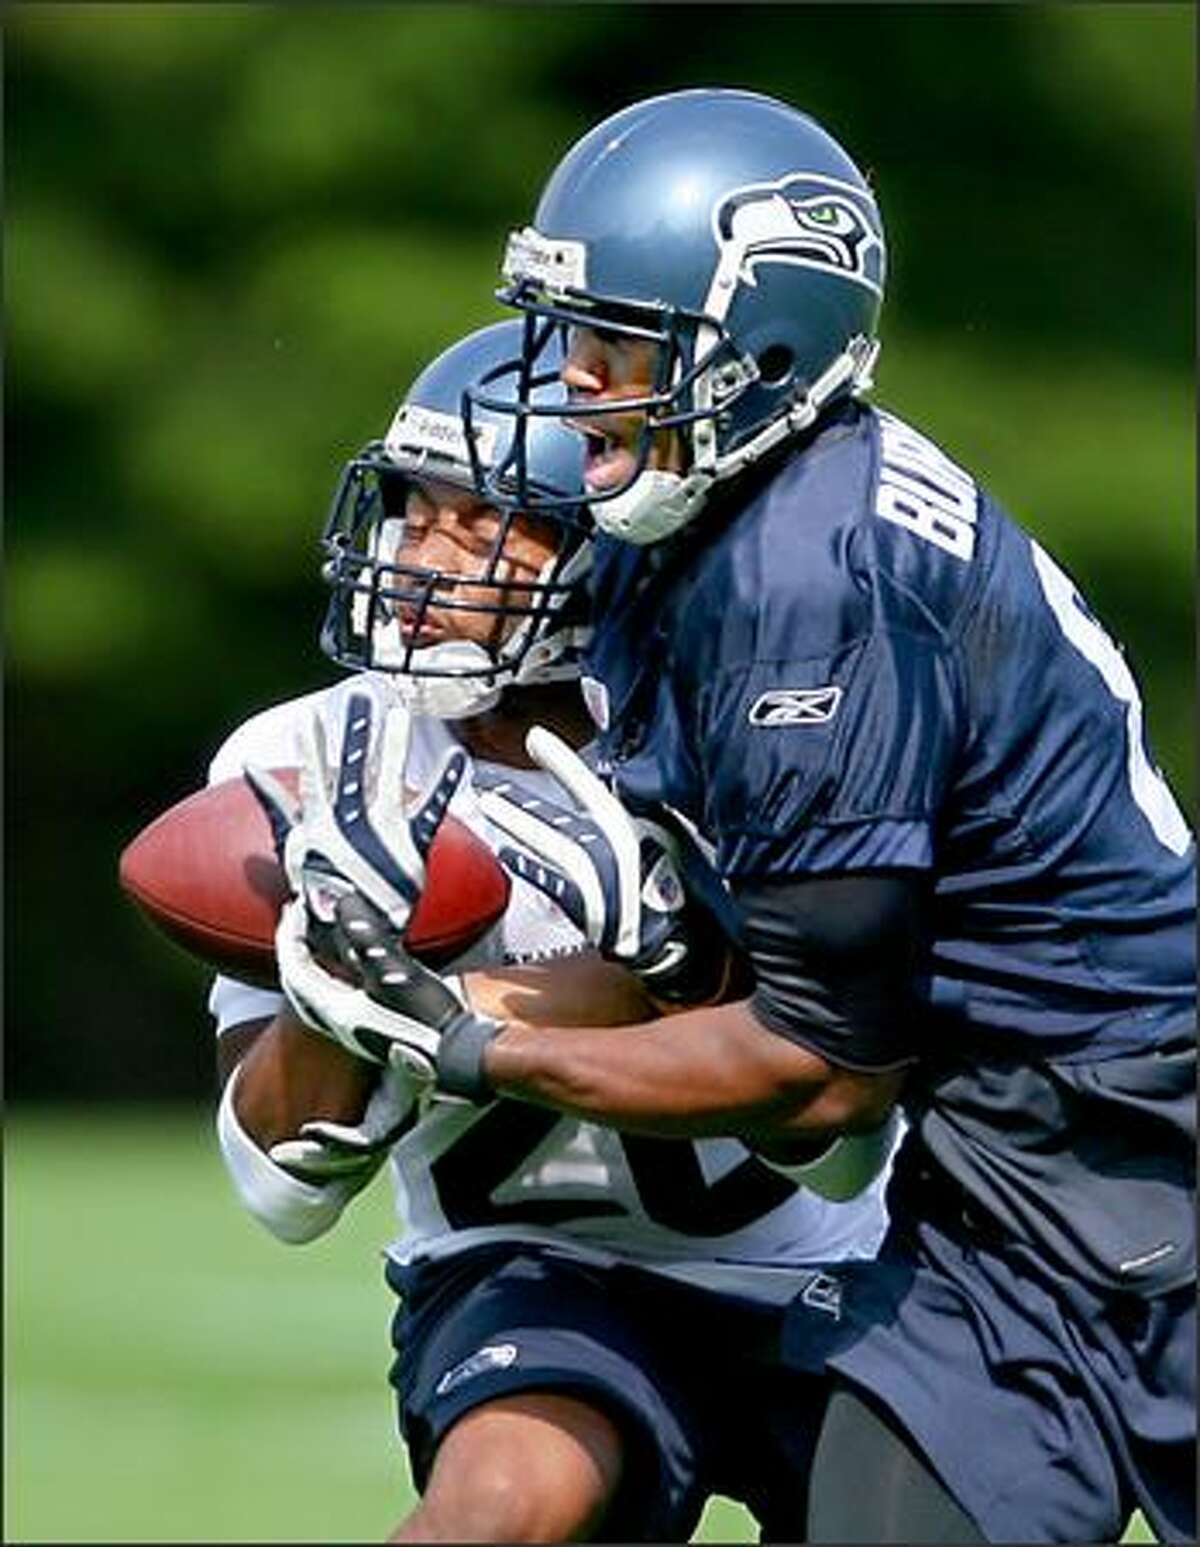 Wide receiver Nate Burleson (right) battles with cornerback Josh Wilson for a pass as Wilson knocked the ball to the ground as the Seattle Seahawks hold the first practice of their 2008 season training camp at their Kirkland, Wash., headquarters Friday.